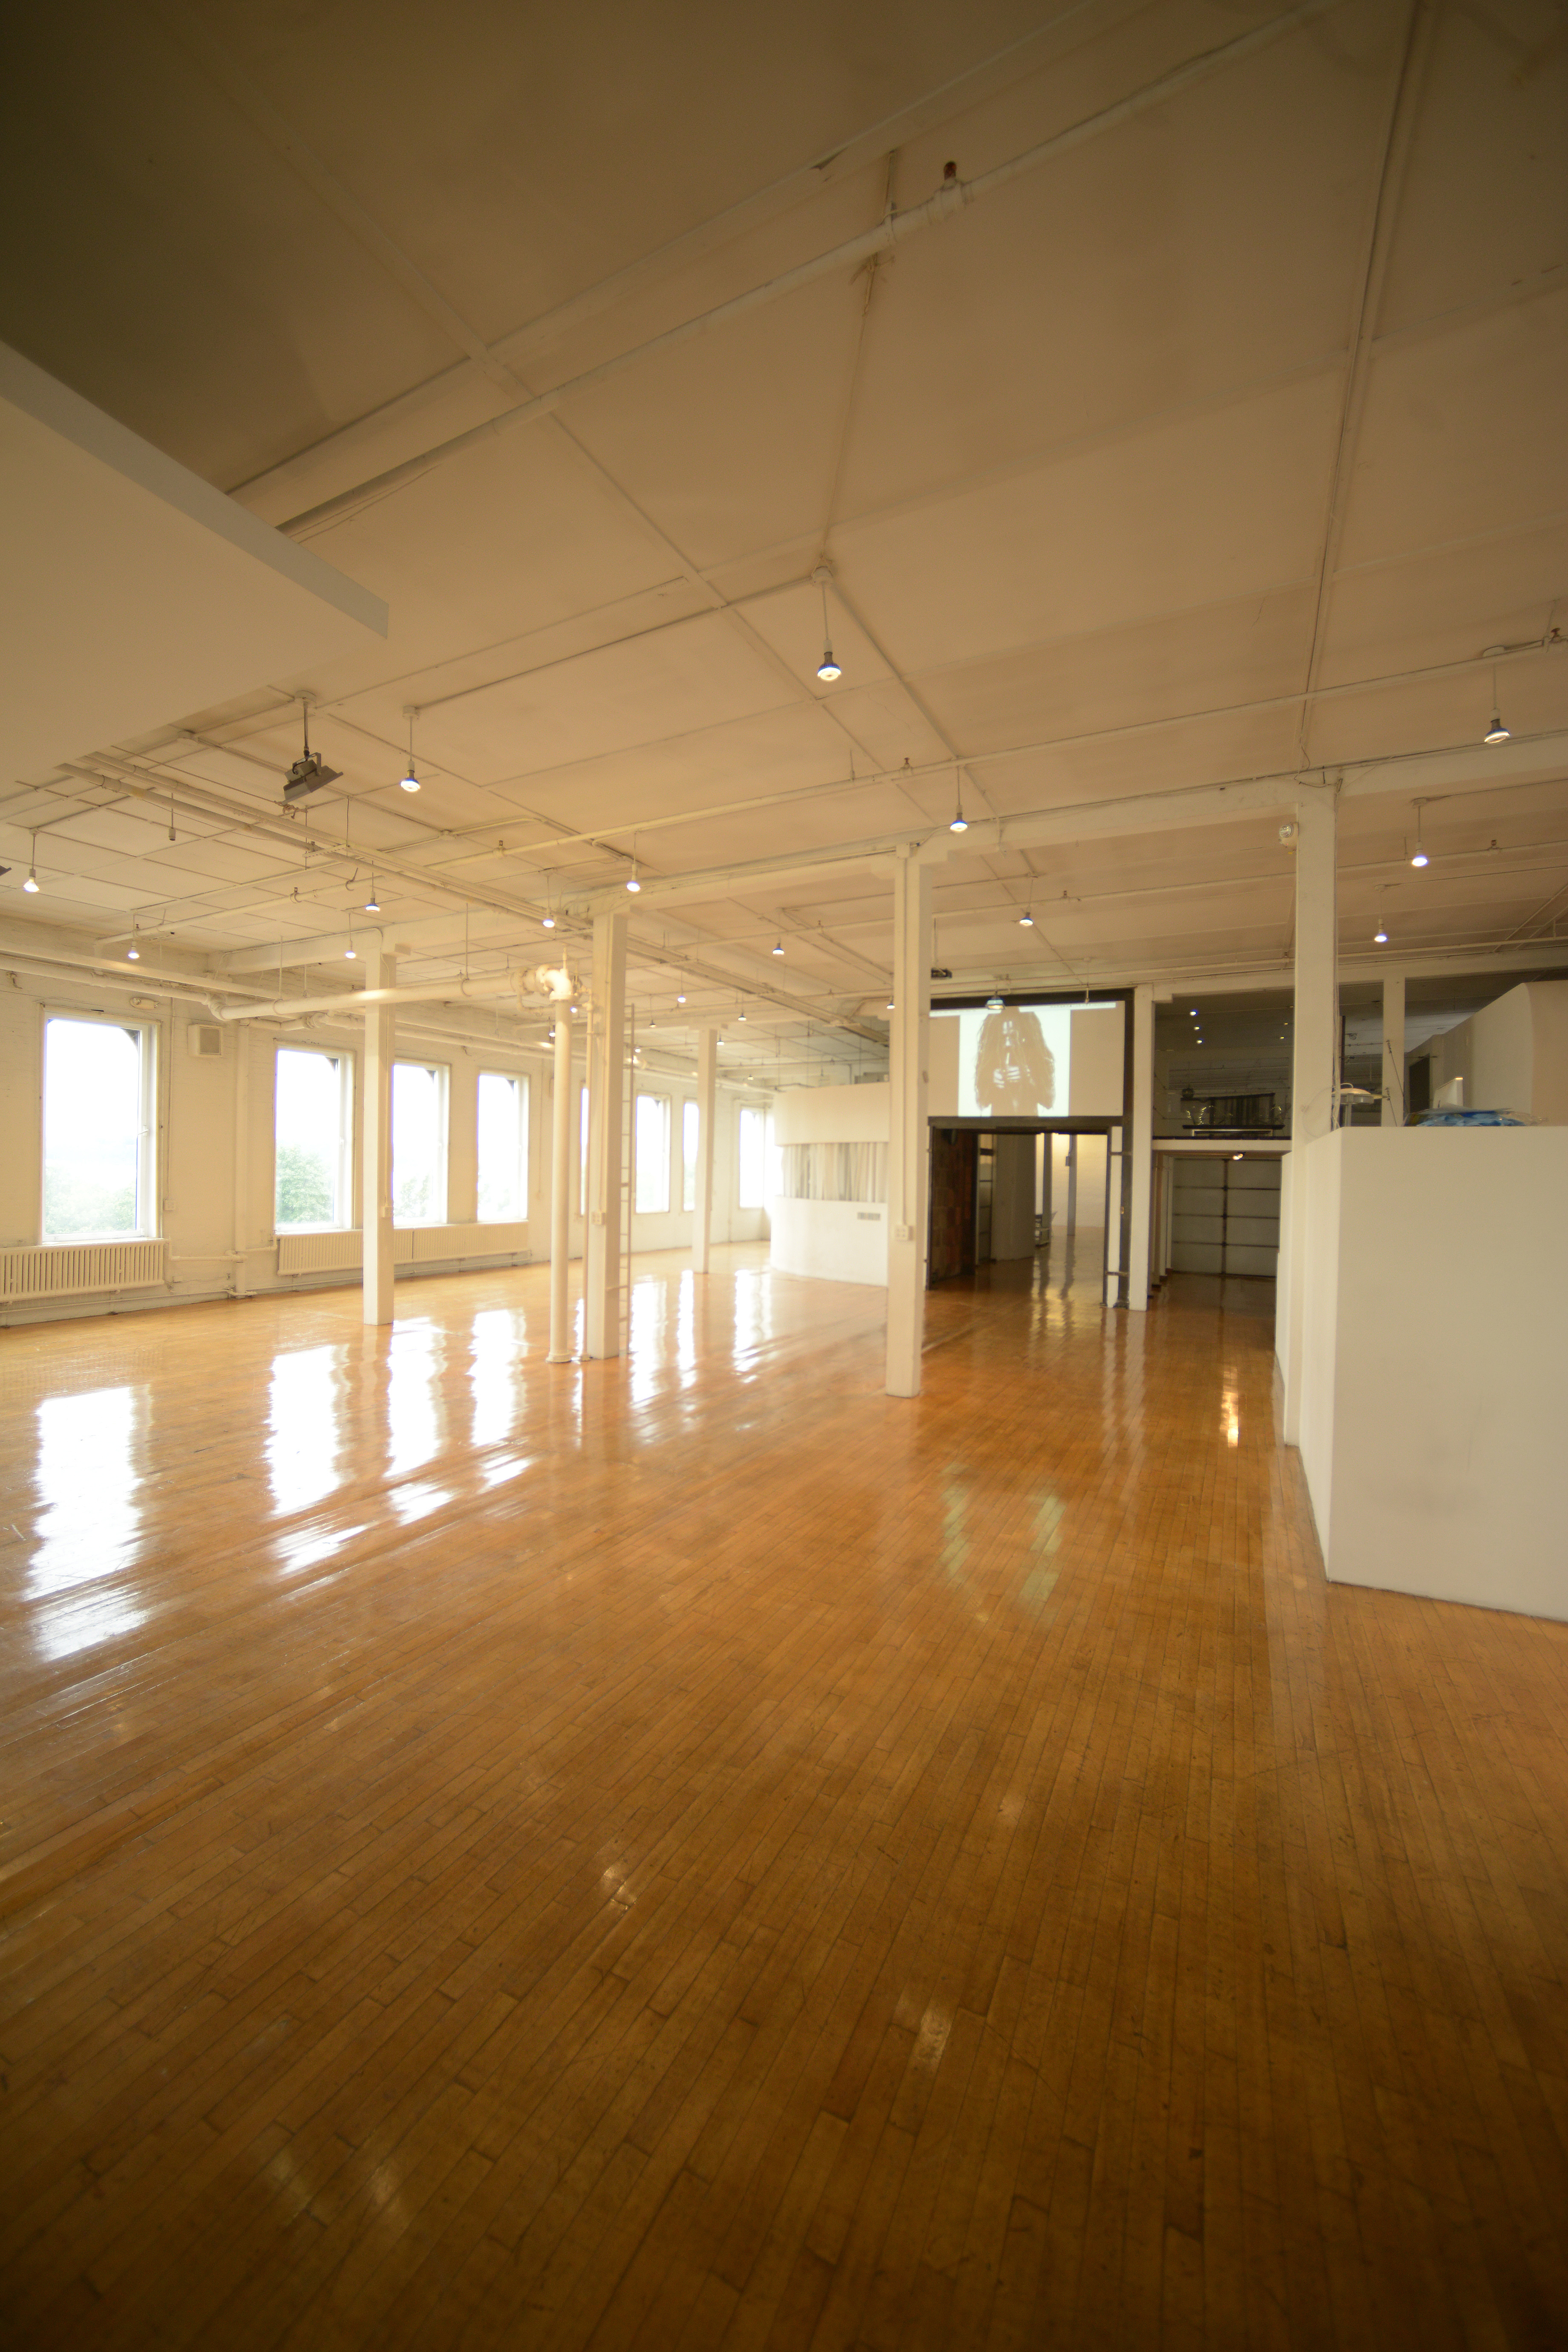 cost to refinish hardwood floors nyc of search plan and book your private event in new york city nyc ny in michelson studio event space in new york city nyc ny nj area